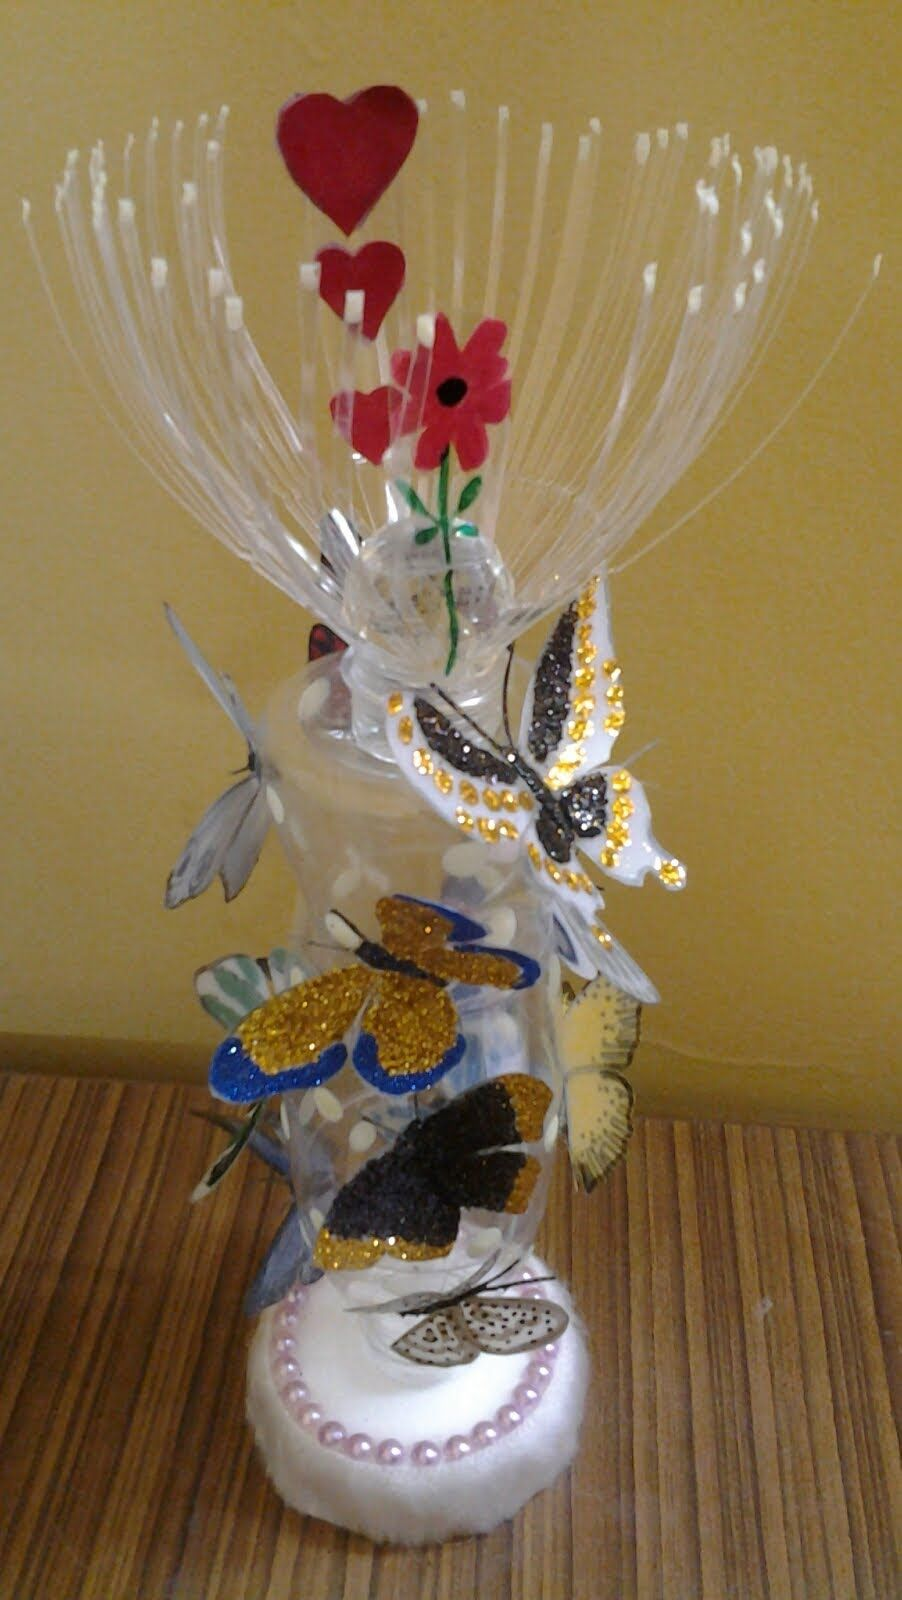 Best out of waste plastic cans bottles transformed to for Images of decorative items made from waste material